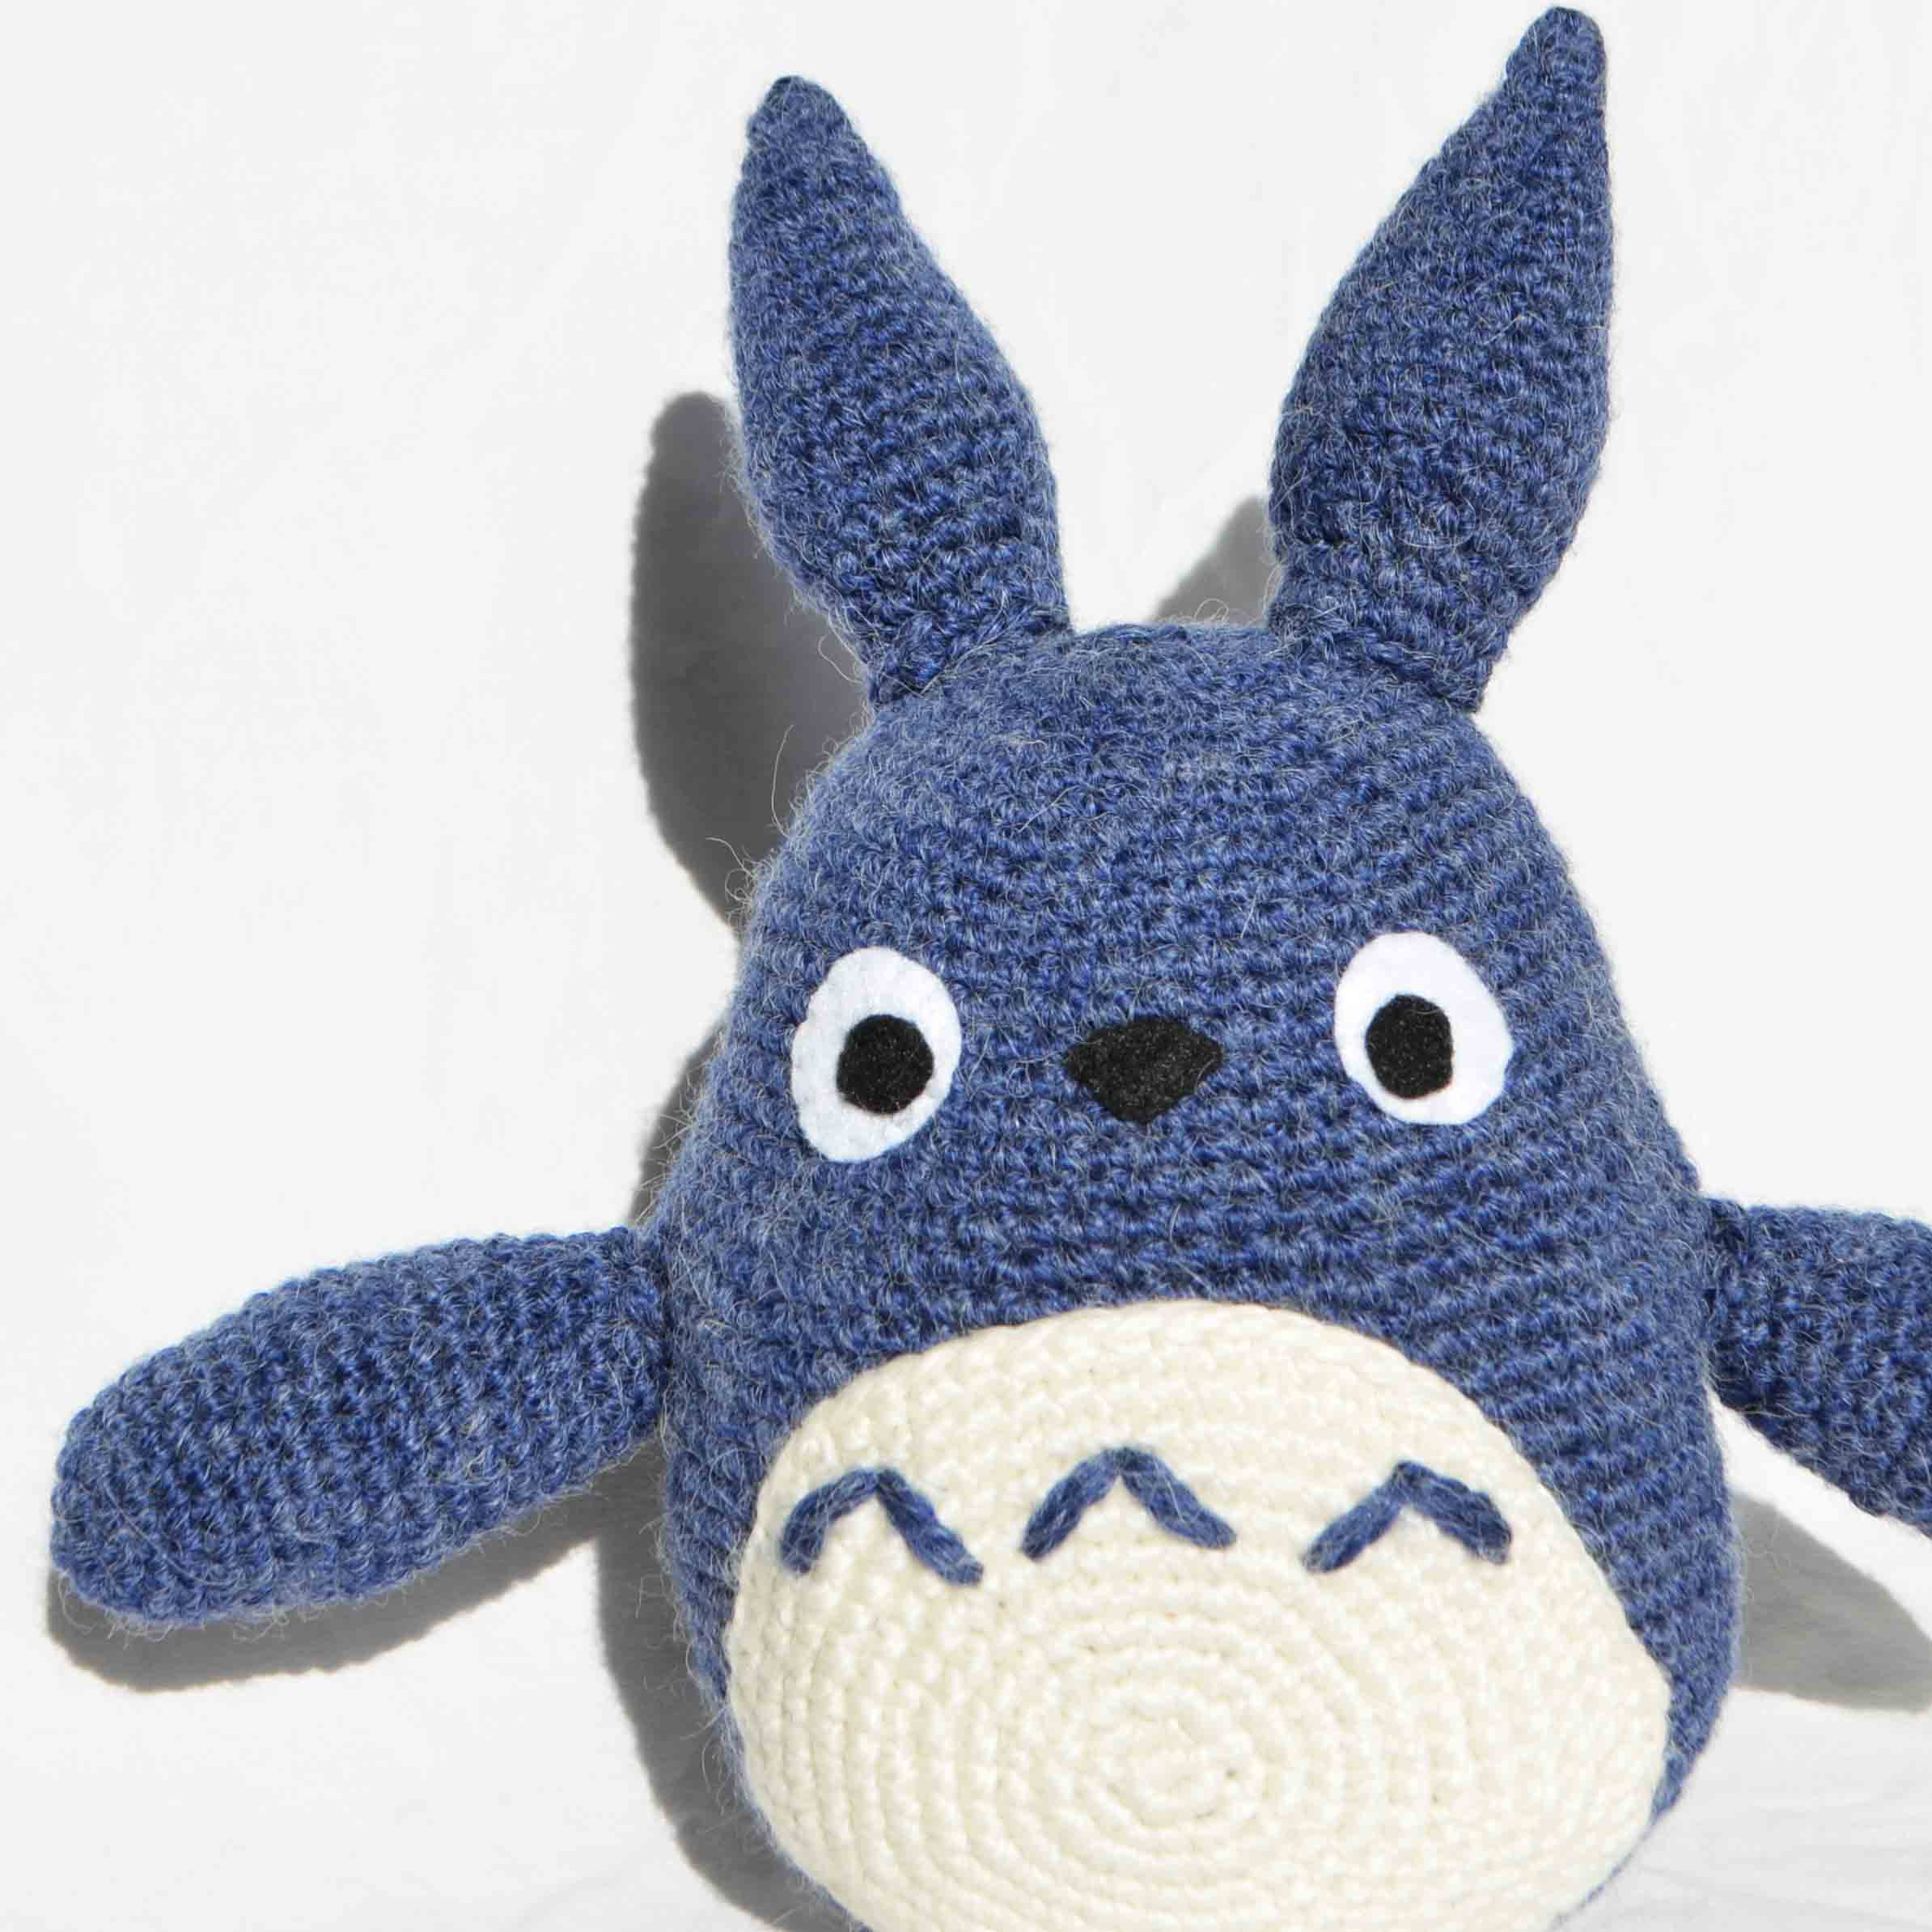 Amigurumi Projects DIY Geekery